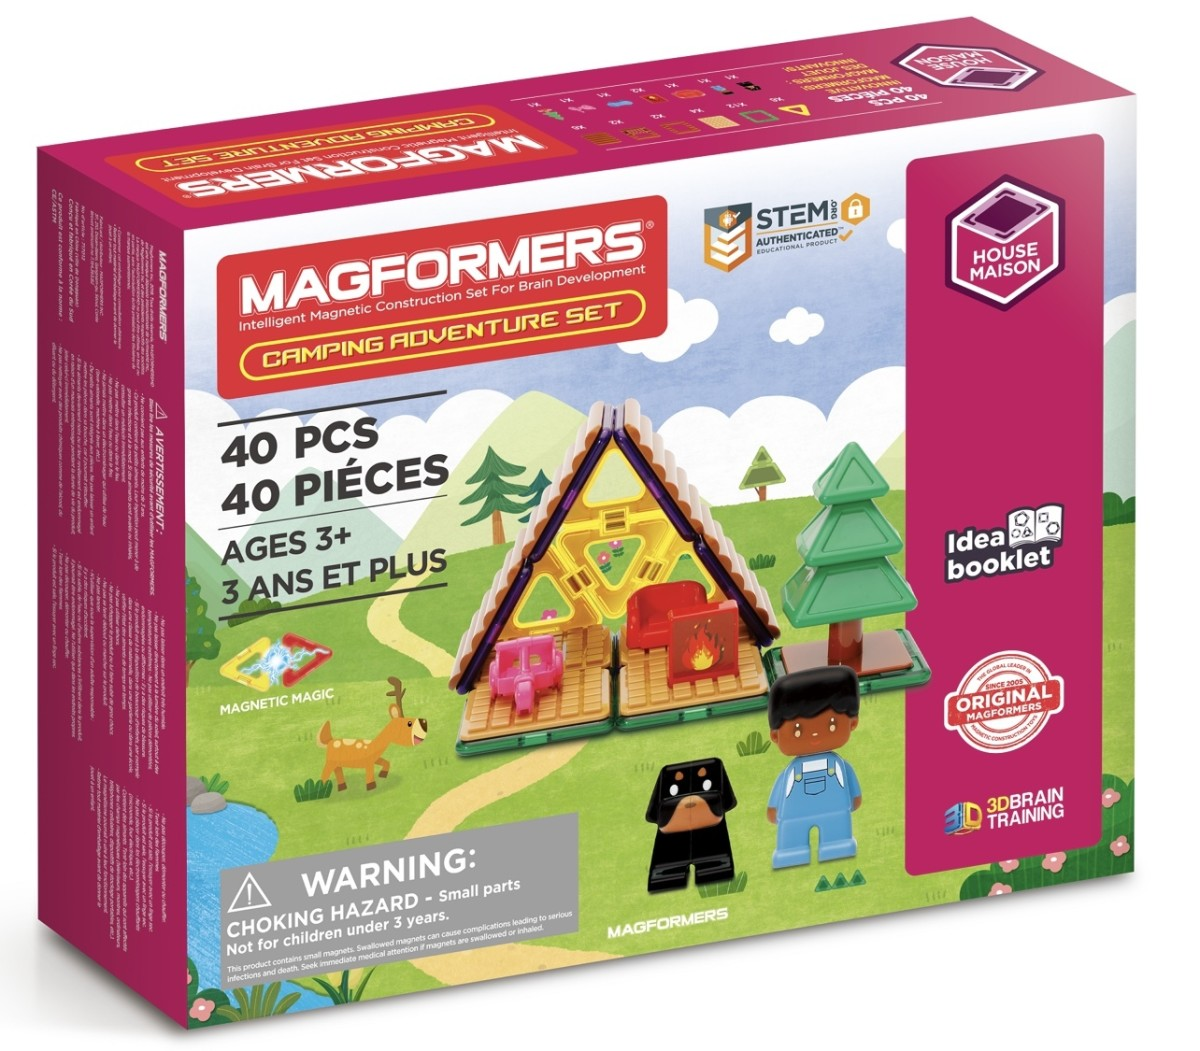 Gaming Fun For Kids and Those Older Comes From MAGFORMERS and Thames & Kosmos' EXIT Escape Room Games